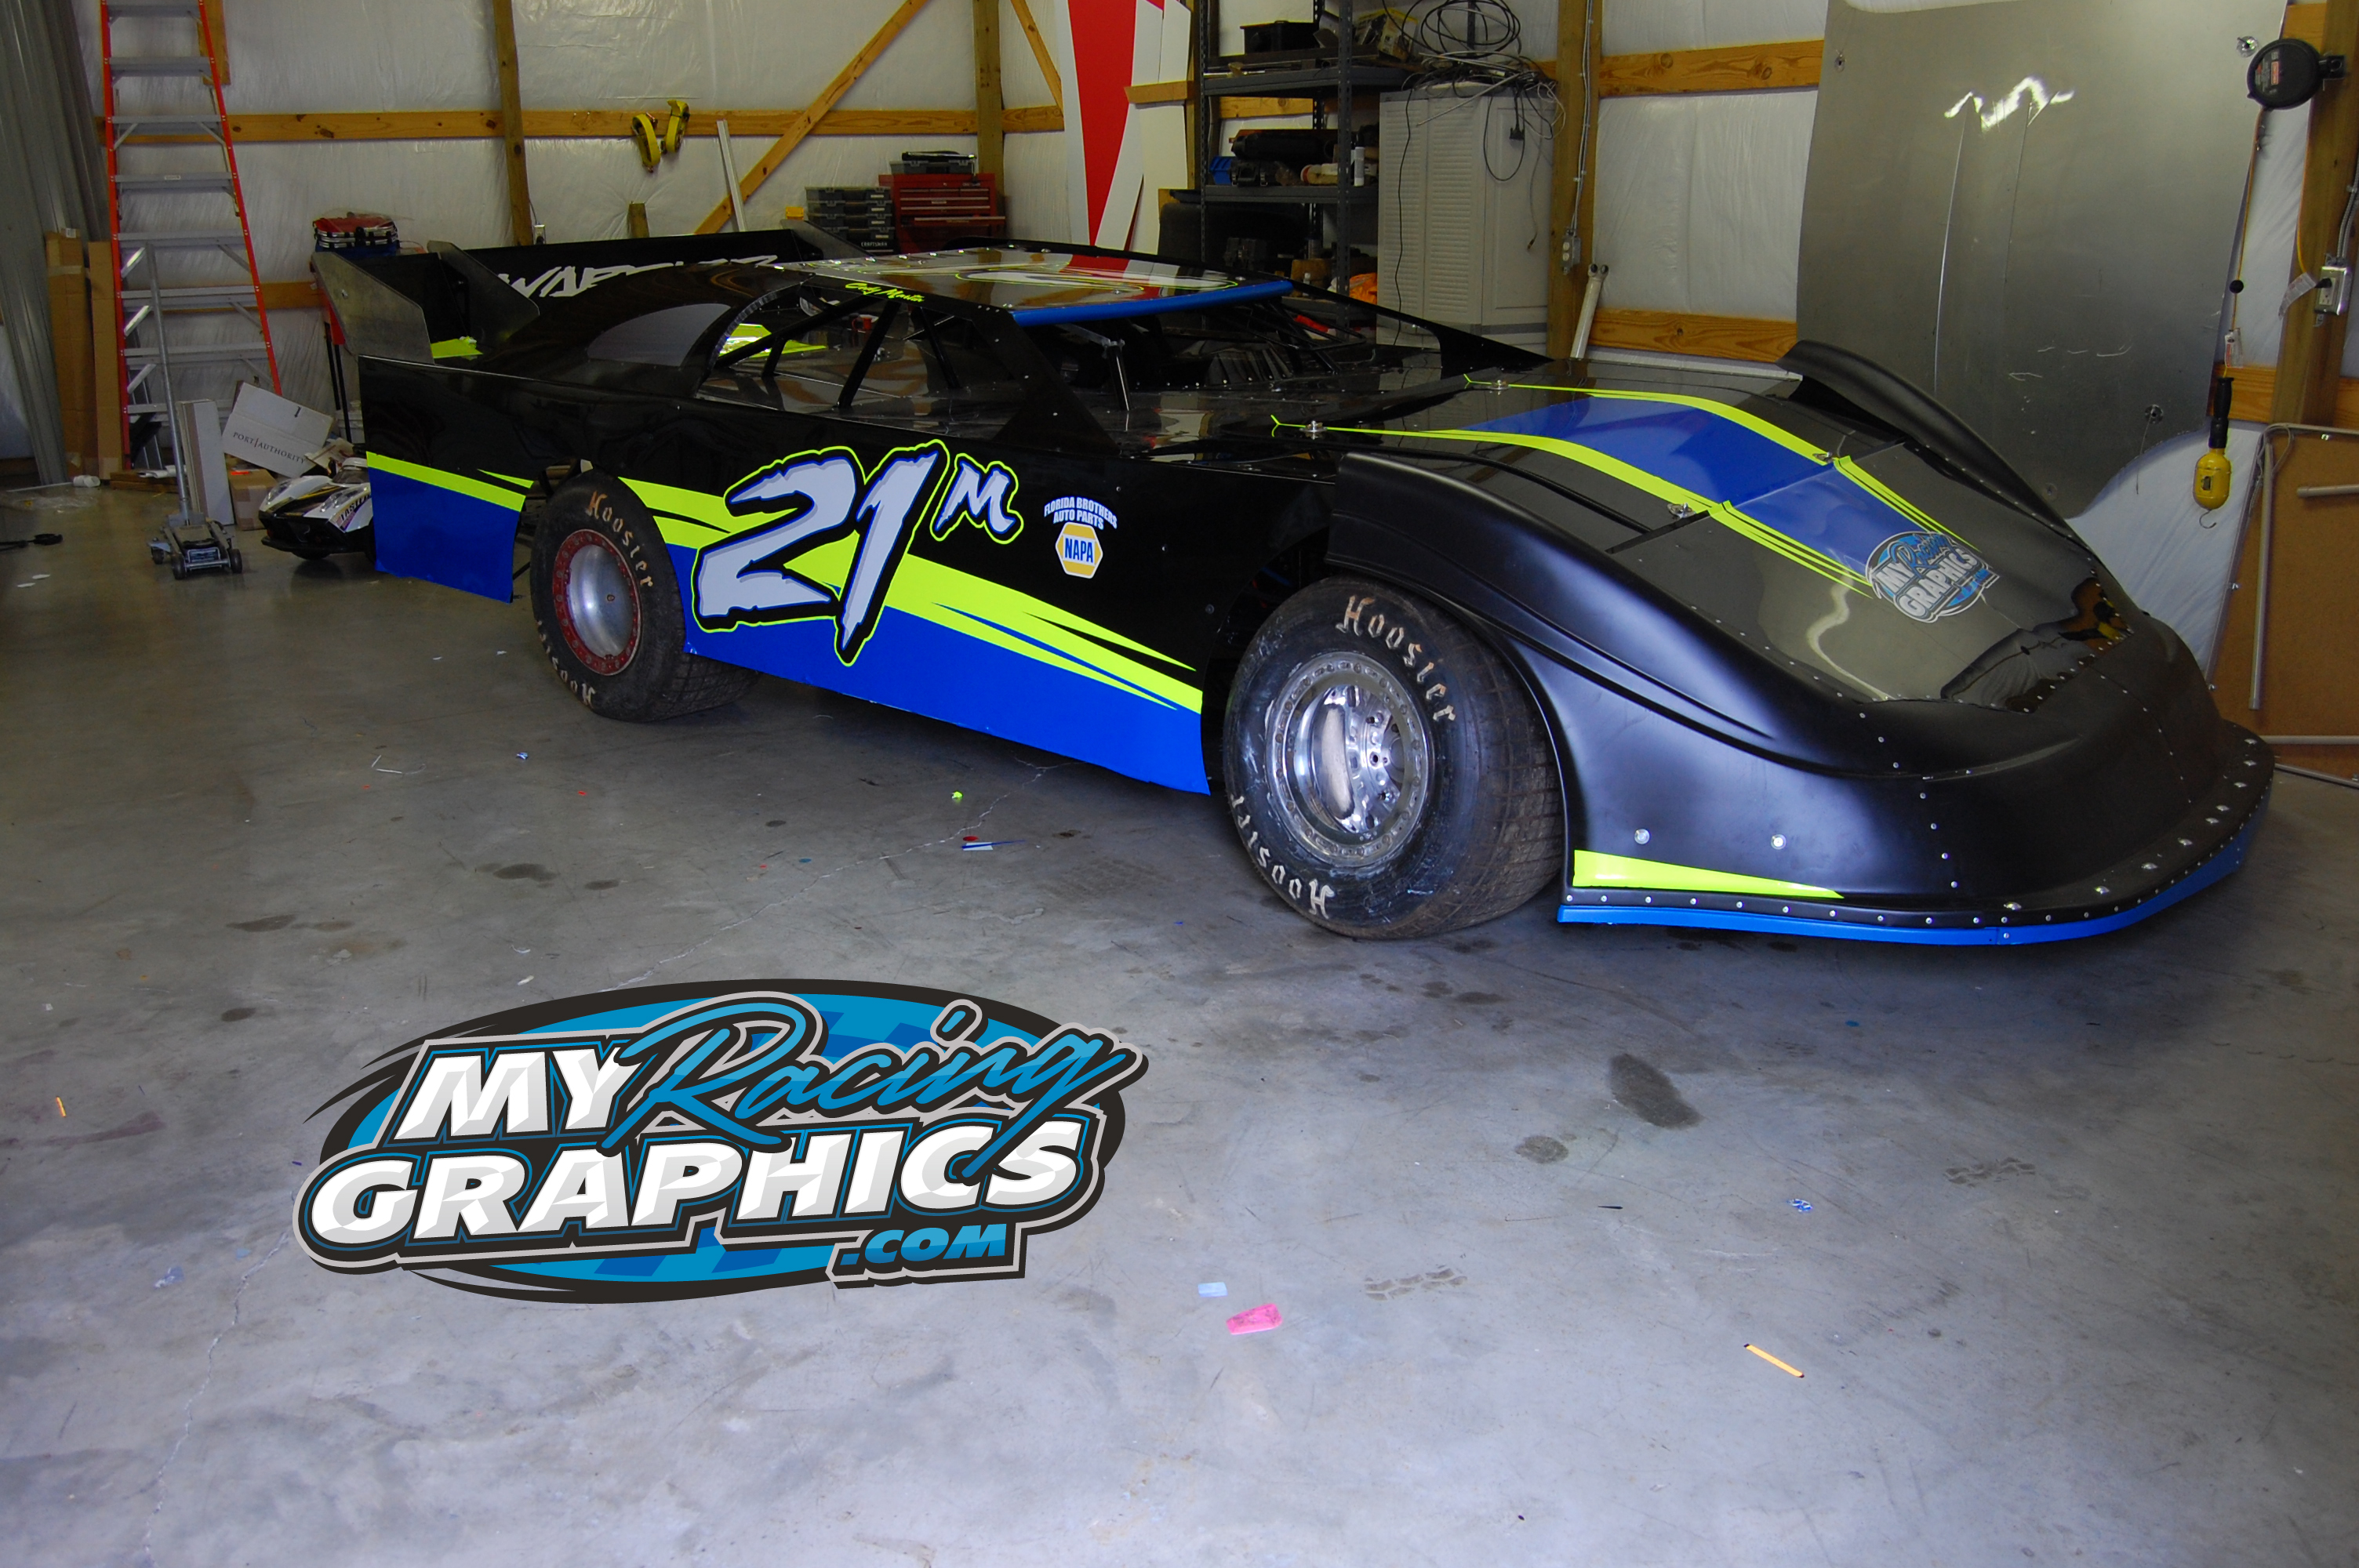 Topic Quarter midget decal designs confirm. happens